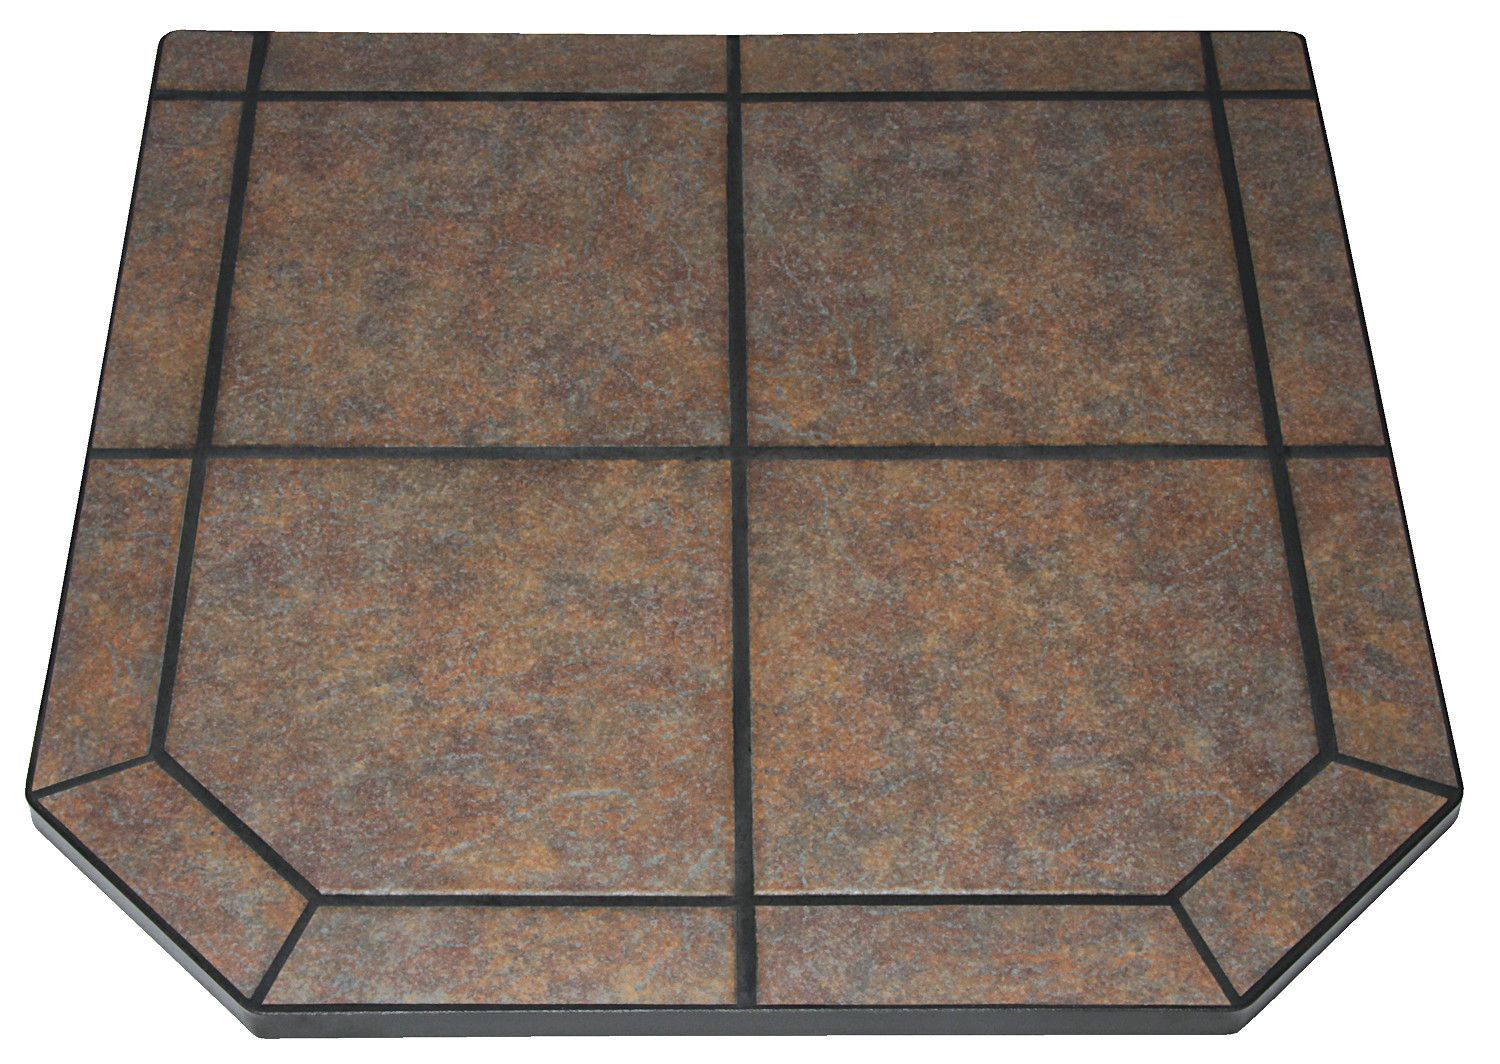 Type 1 tile hearth pad products pinterest hearth pad bring a classic look to your fireplace with type 1 tartara tile hearth pad from american classics it crafted from a variety quality stone and ceramics doublecrazyfo Gallery